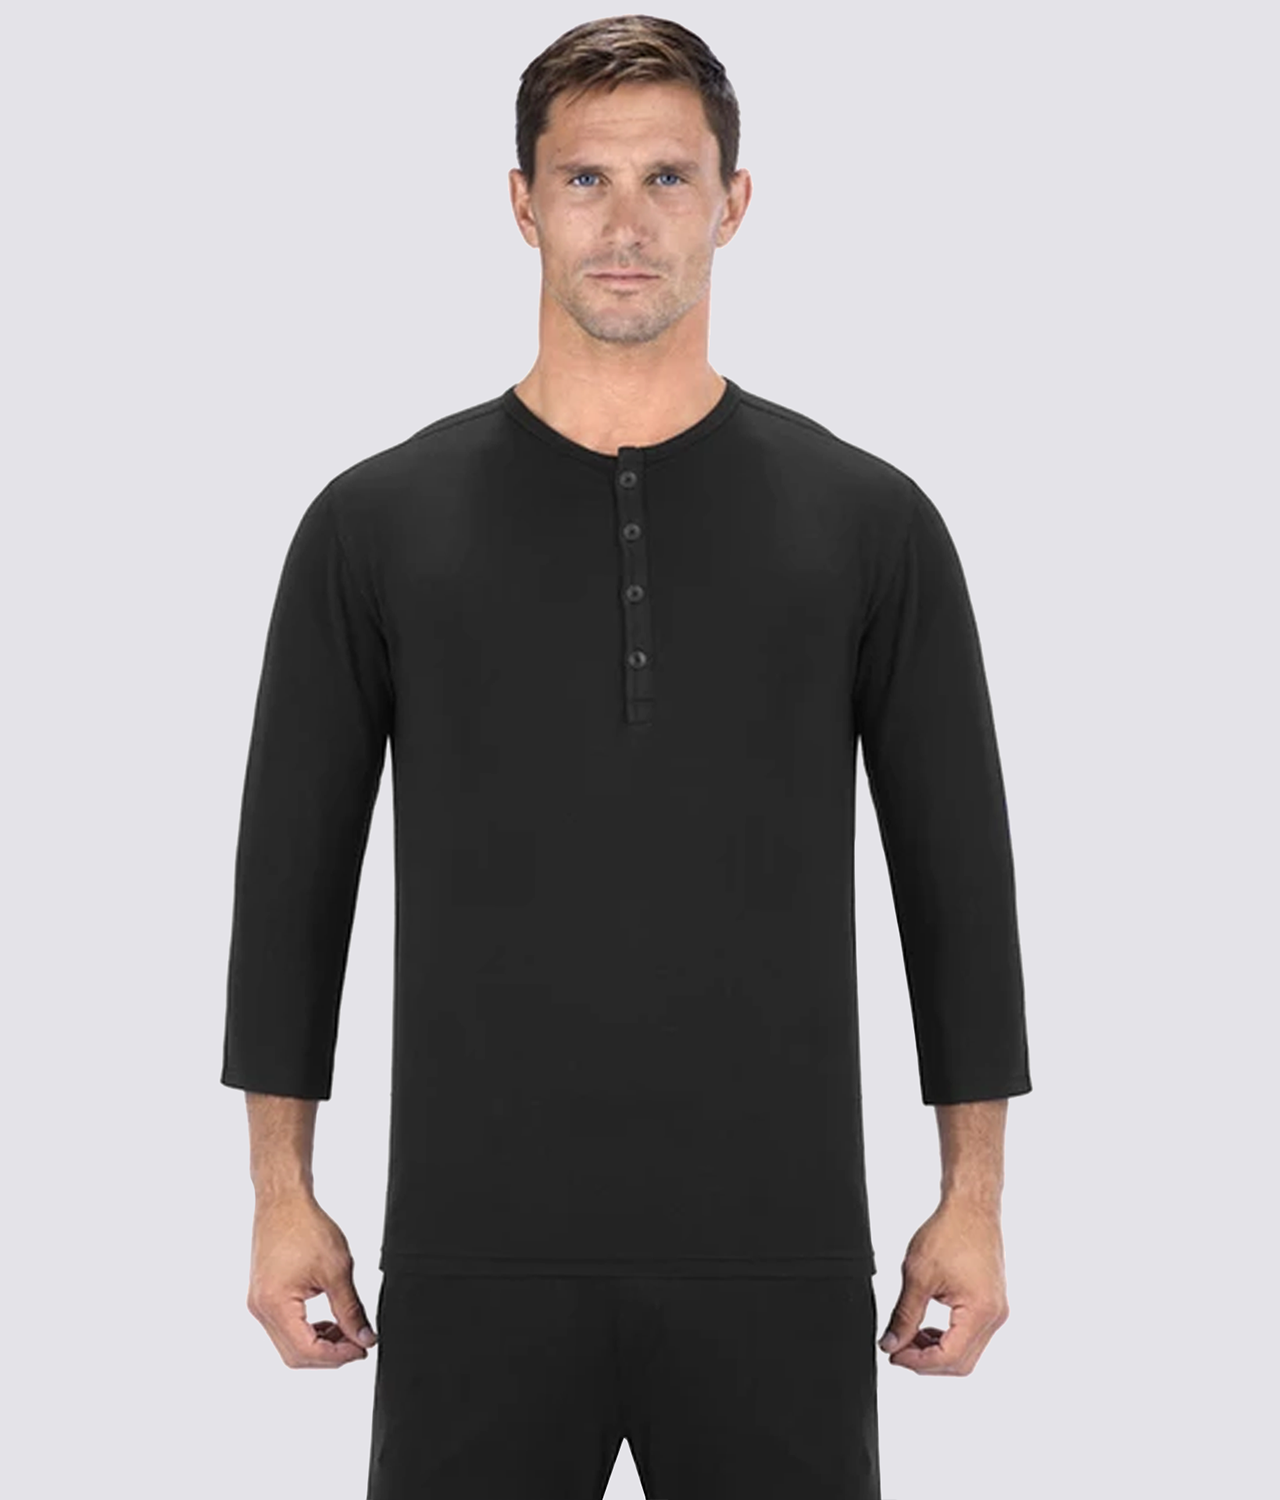 Elite Sports Soft Knit Fabric Black Sleepwear